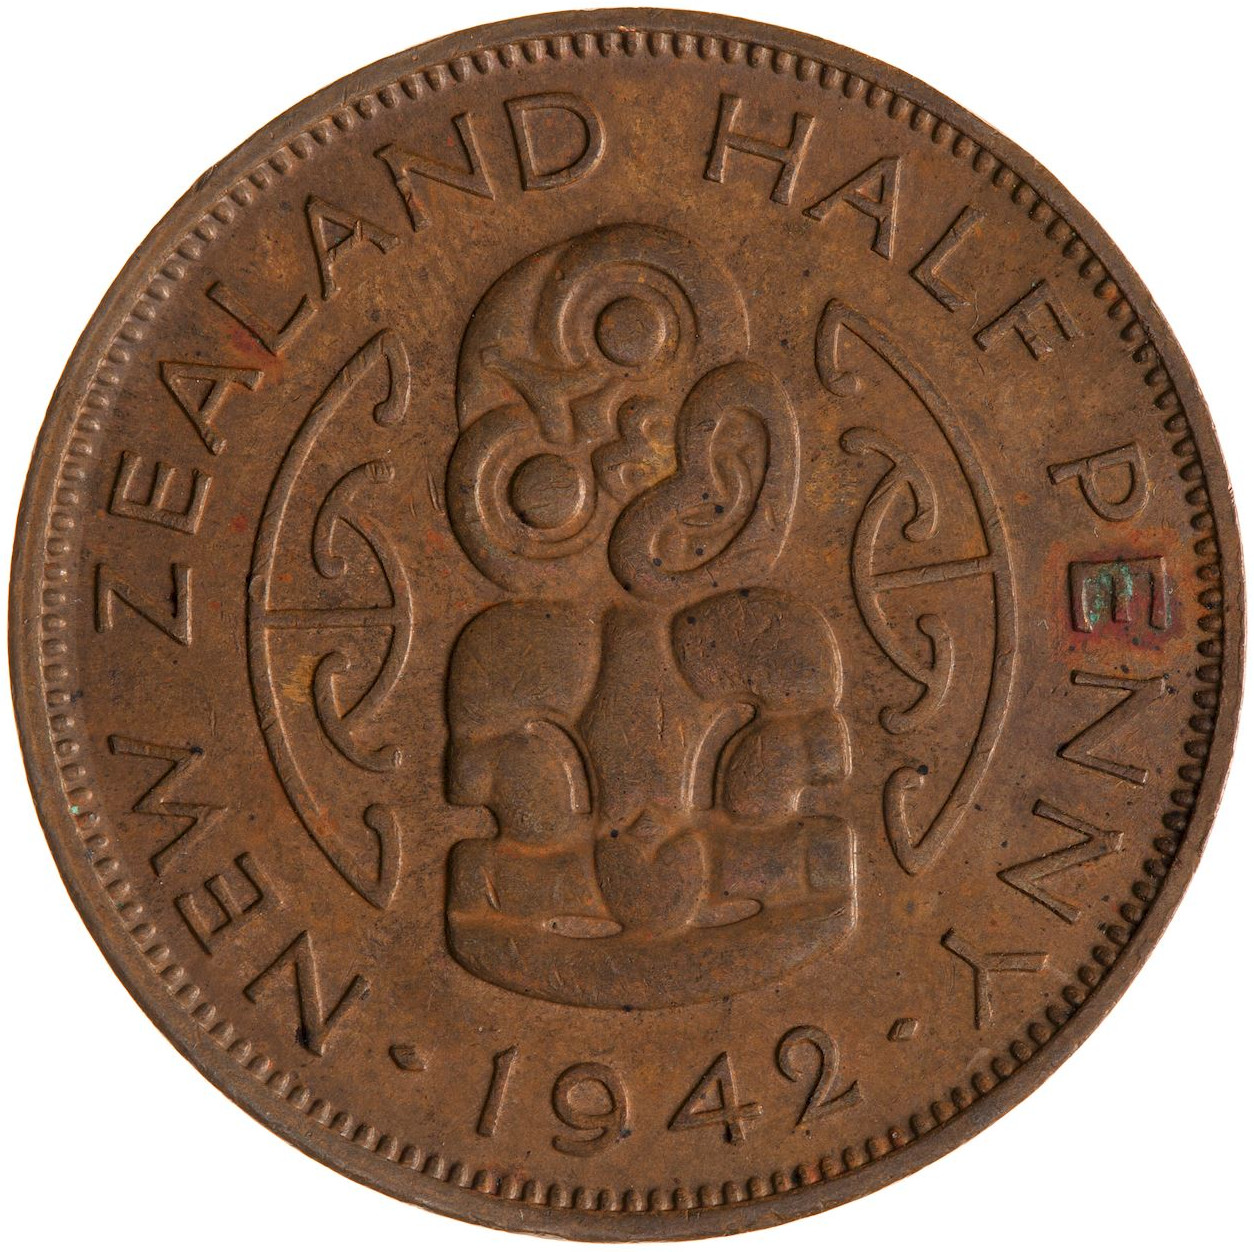 Halfpenny 1942: Photo Coin - 1/2 Penny, New Zealand, 1942